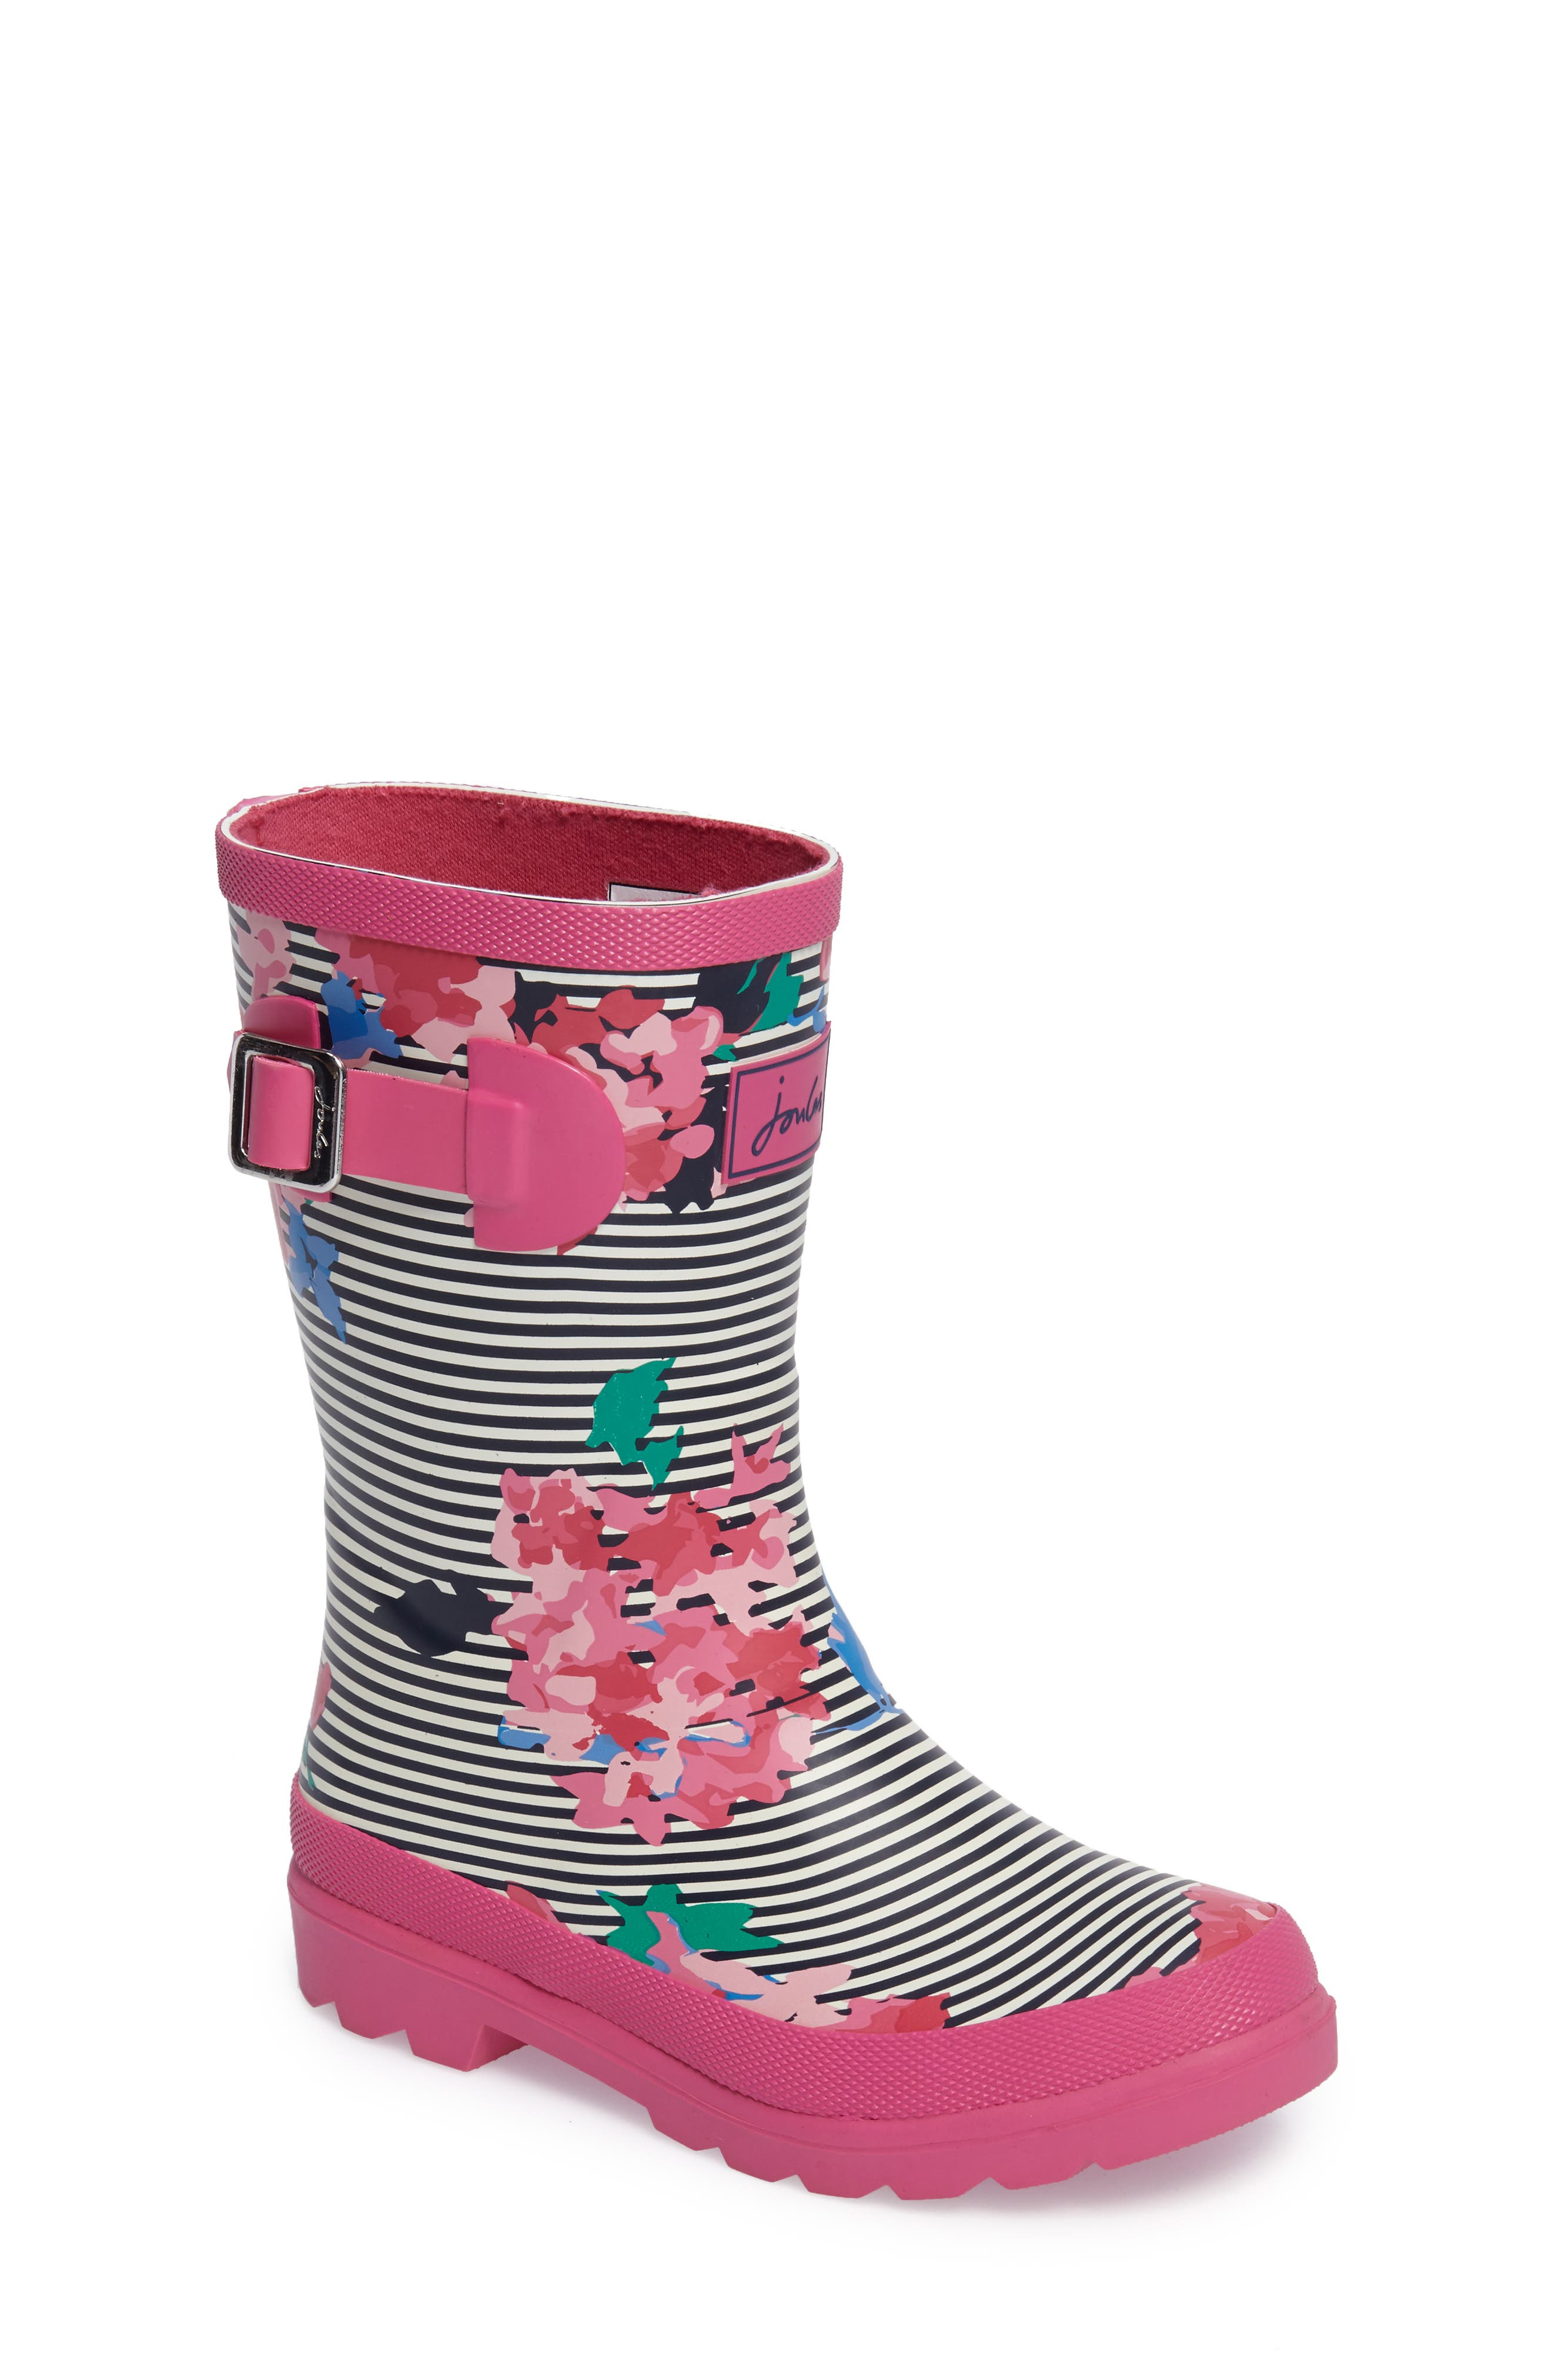 Welly Printed Waterproof Rain Boot,                             Main thumbnail 1, color,                             PINK STRIPE FLORAL